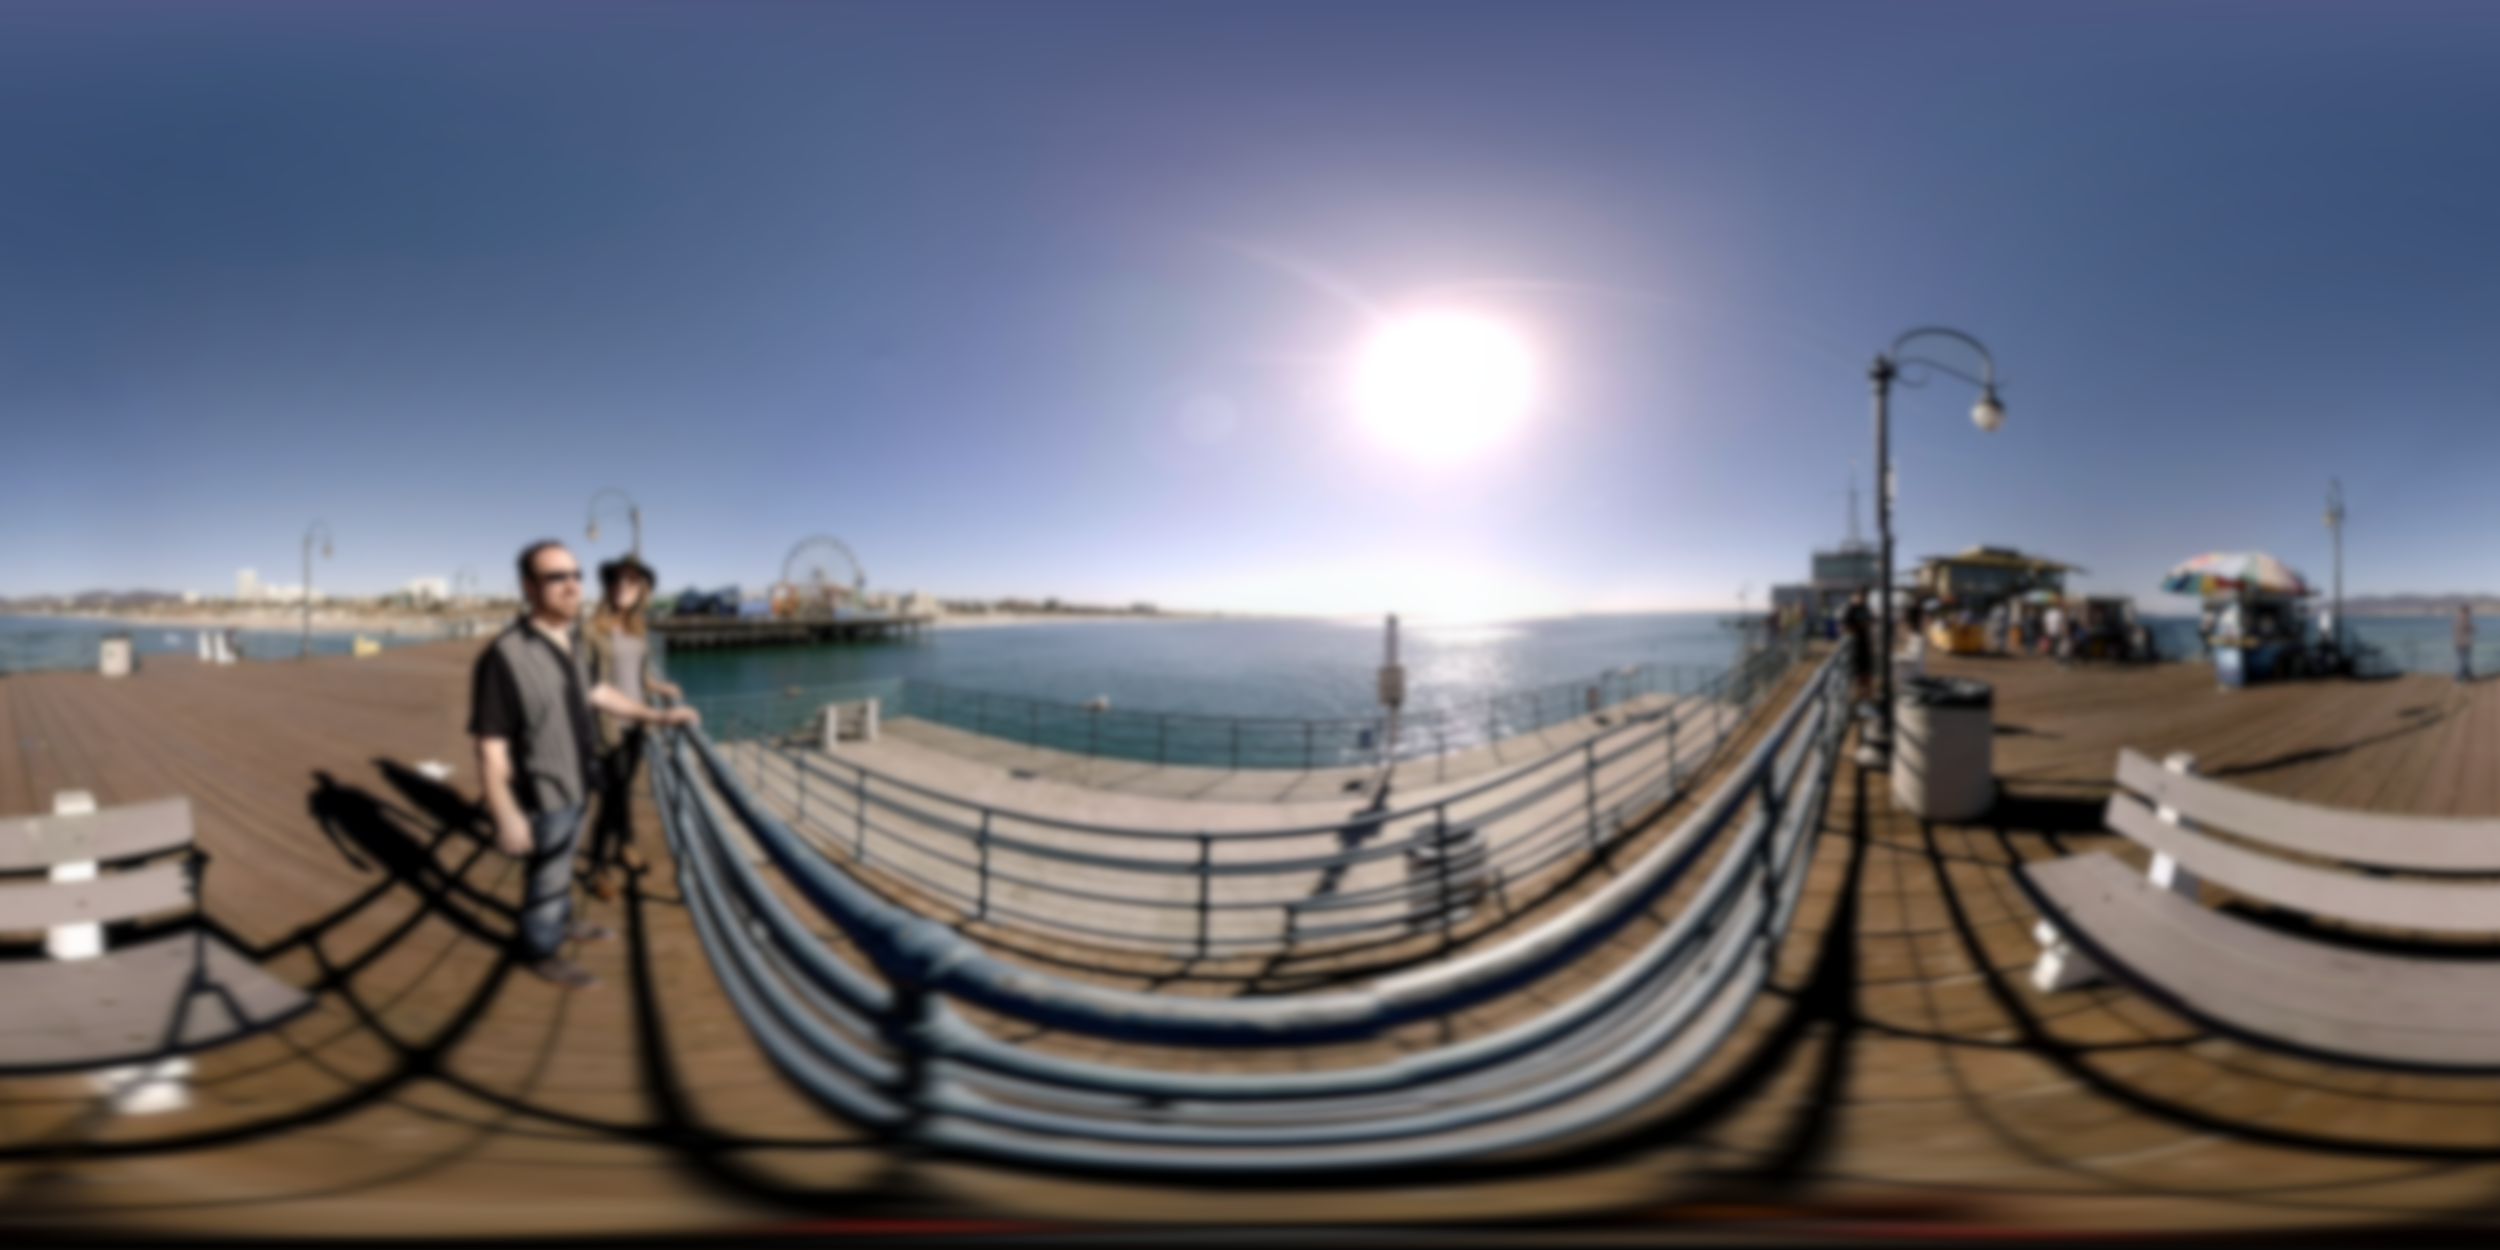 This image was blurred using a 360°-aware filter. No line appears.